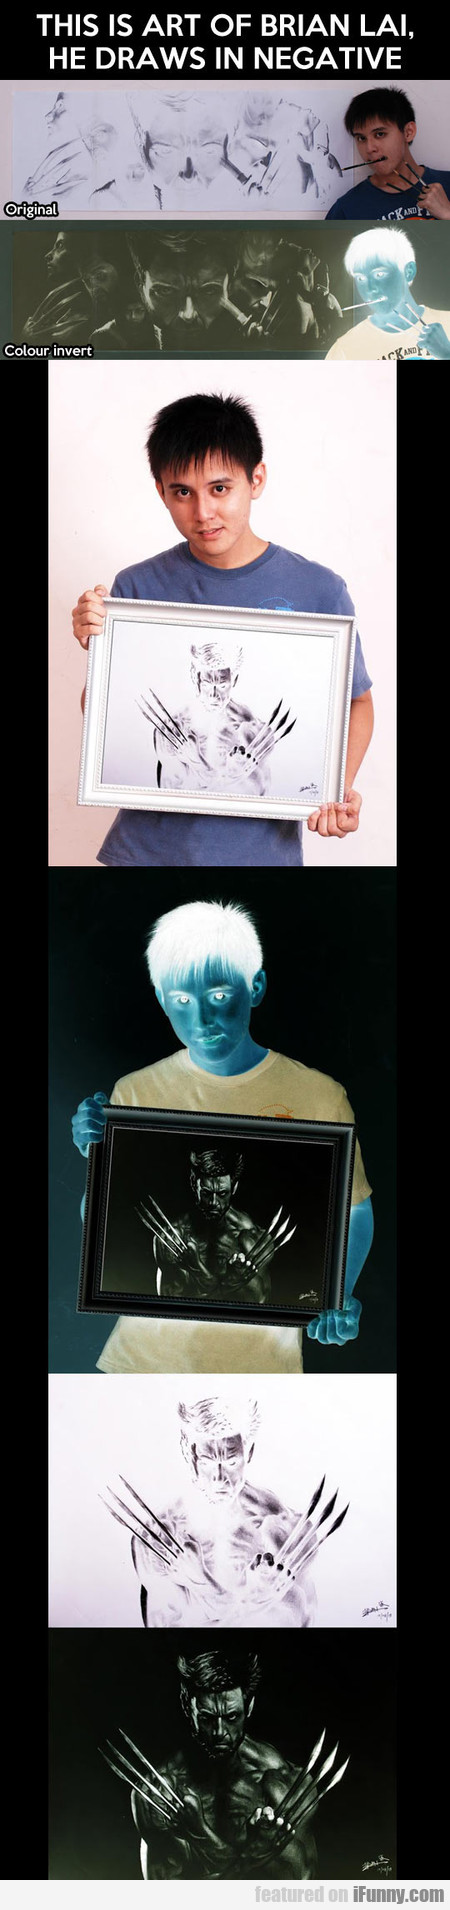 This Is Art Of Brian Lai